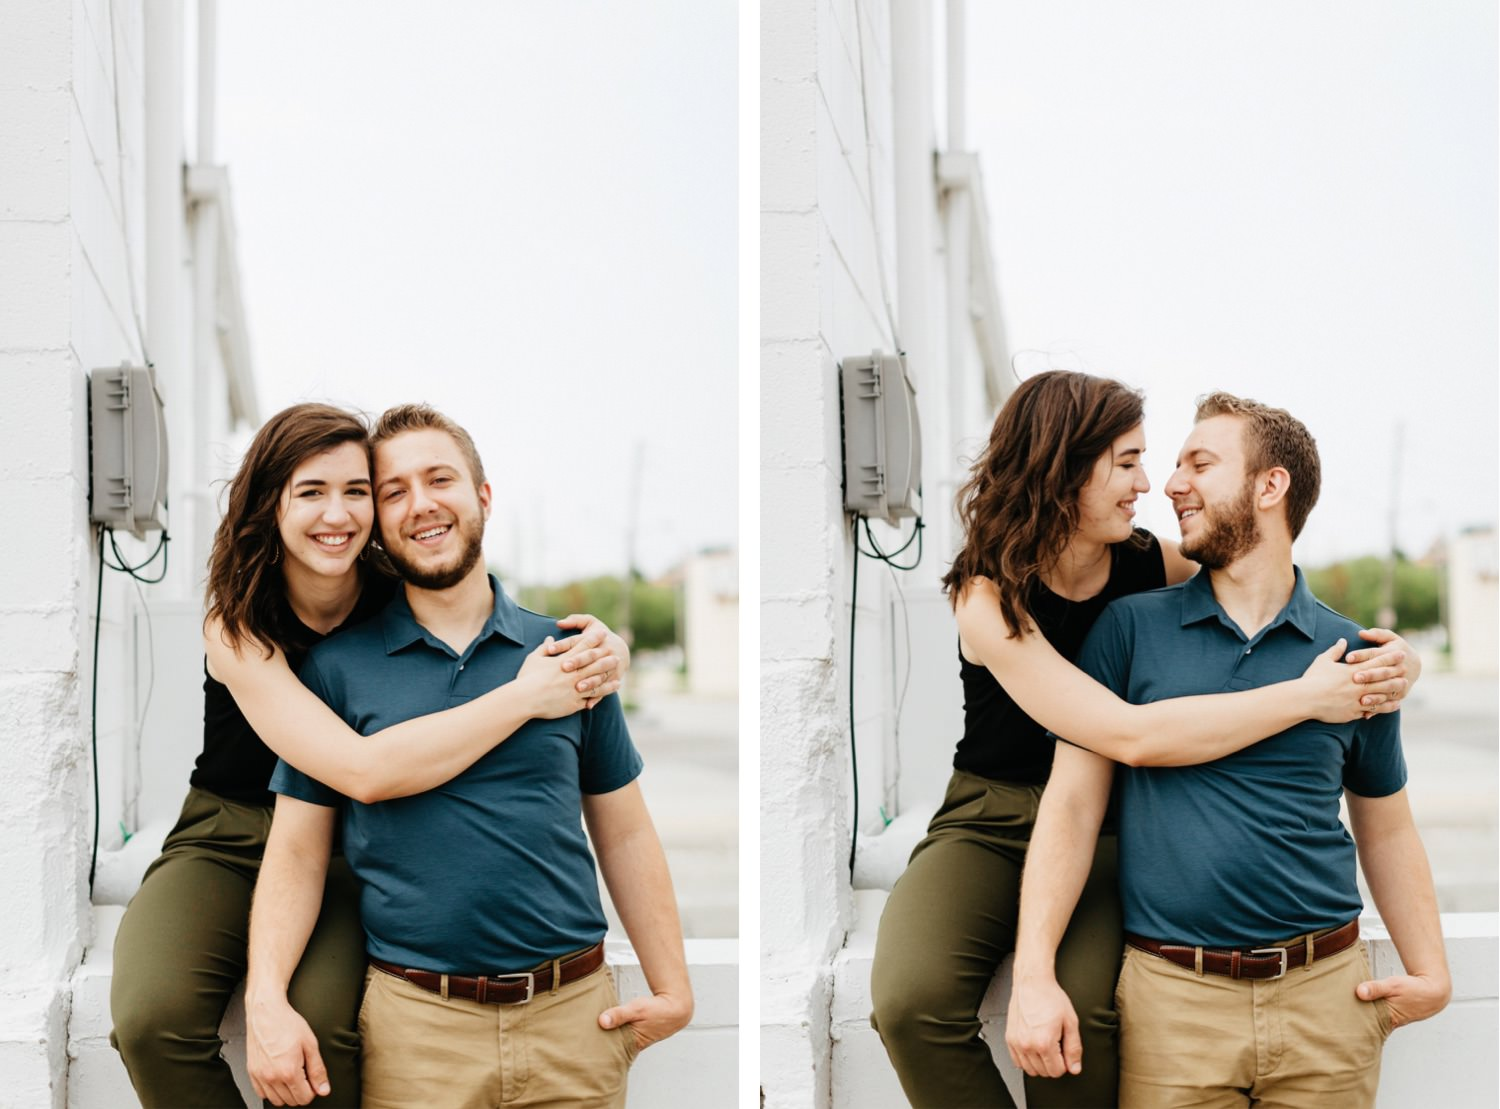 downtown-indianapolis-engagement-session-rooftop-indianapolis-engagement-photographer-kelly-marcelo-photography007.JPG